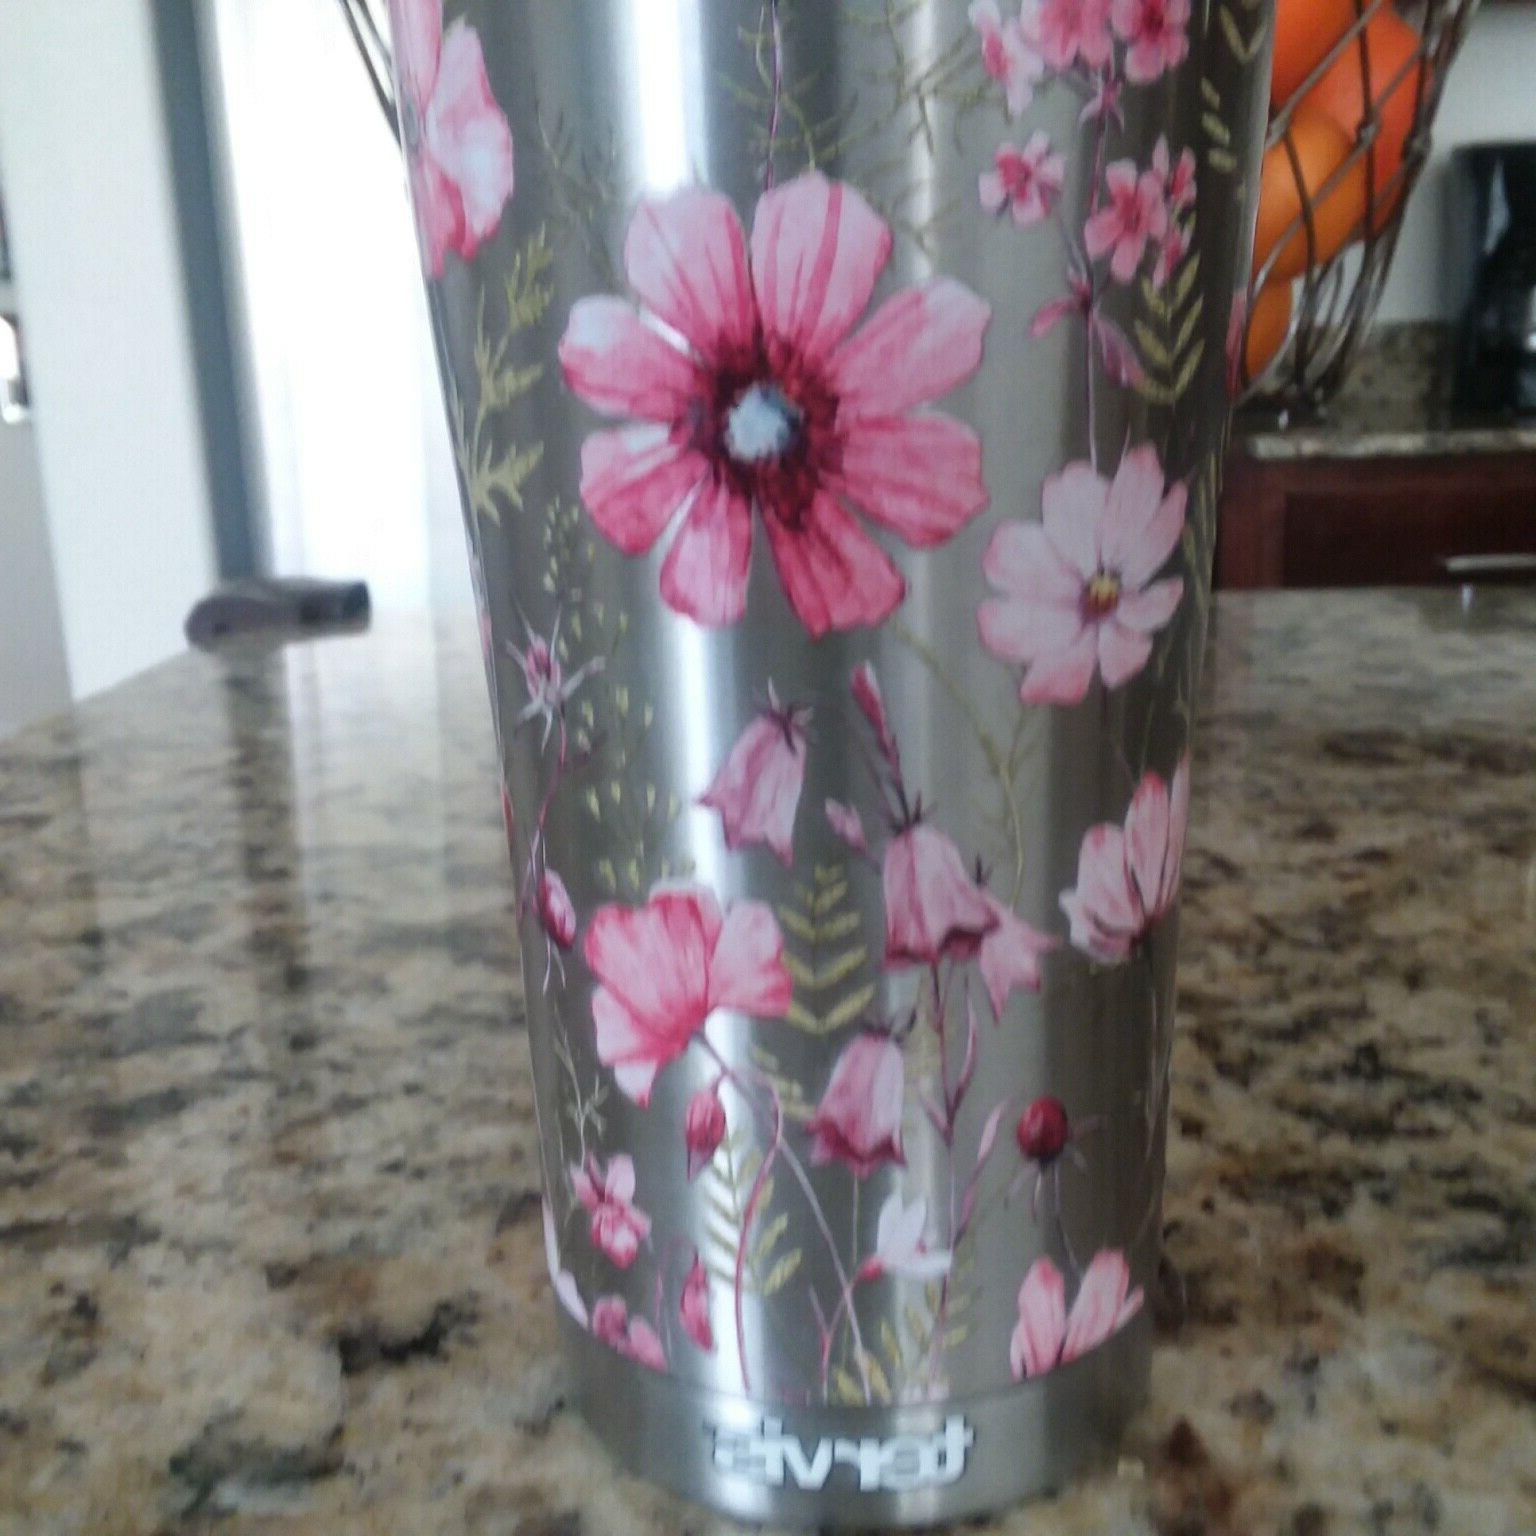 TERVIS Stainless Steel Tumbler with Flip Lid